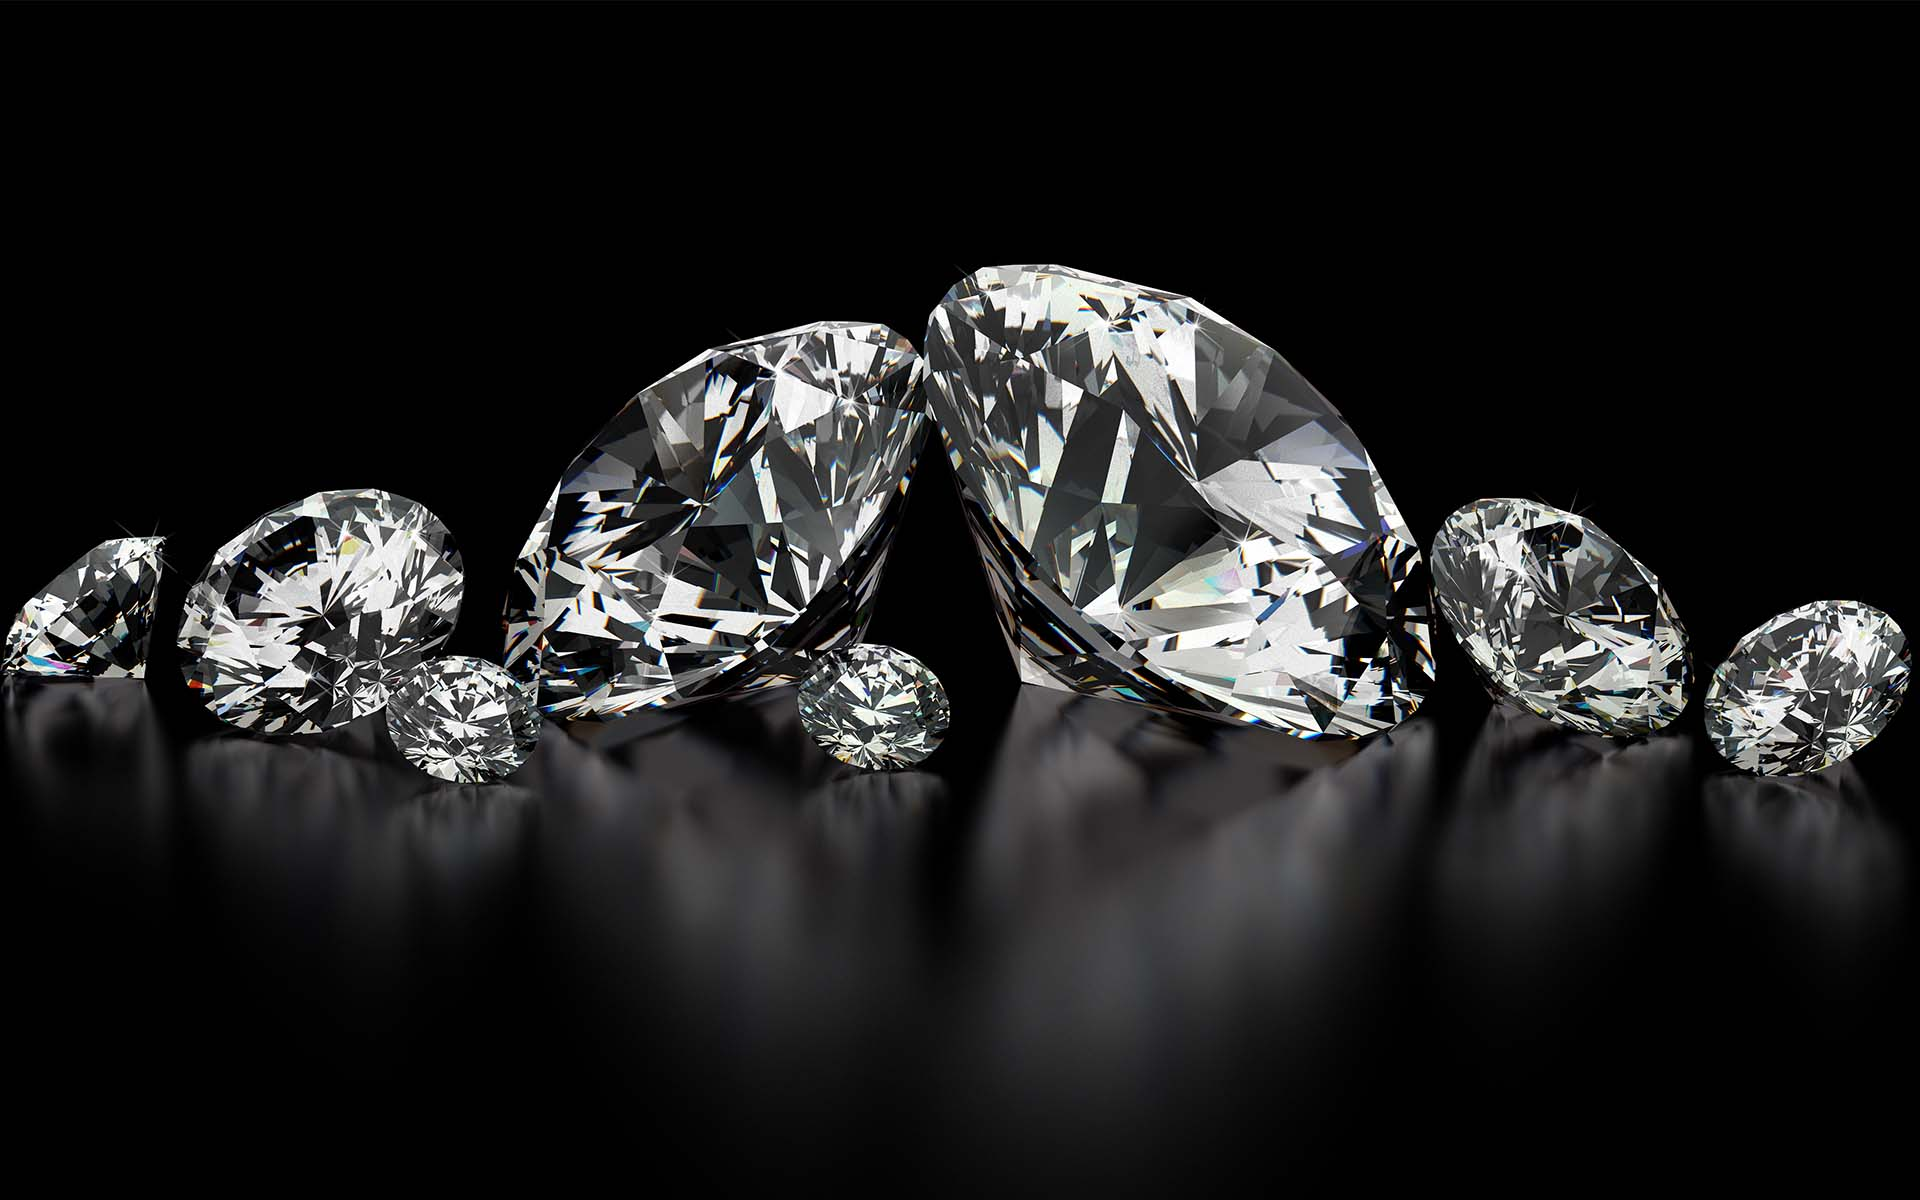 CEDEX is Transforming Diamonds into a New Asset Class